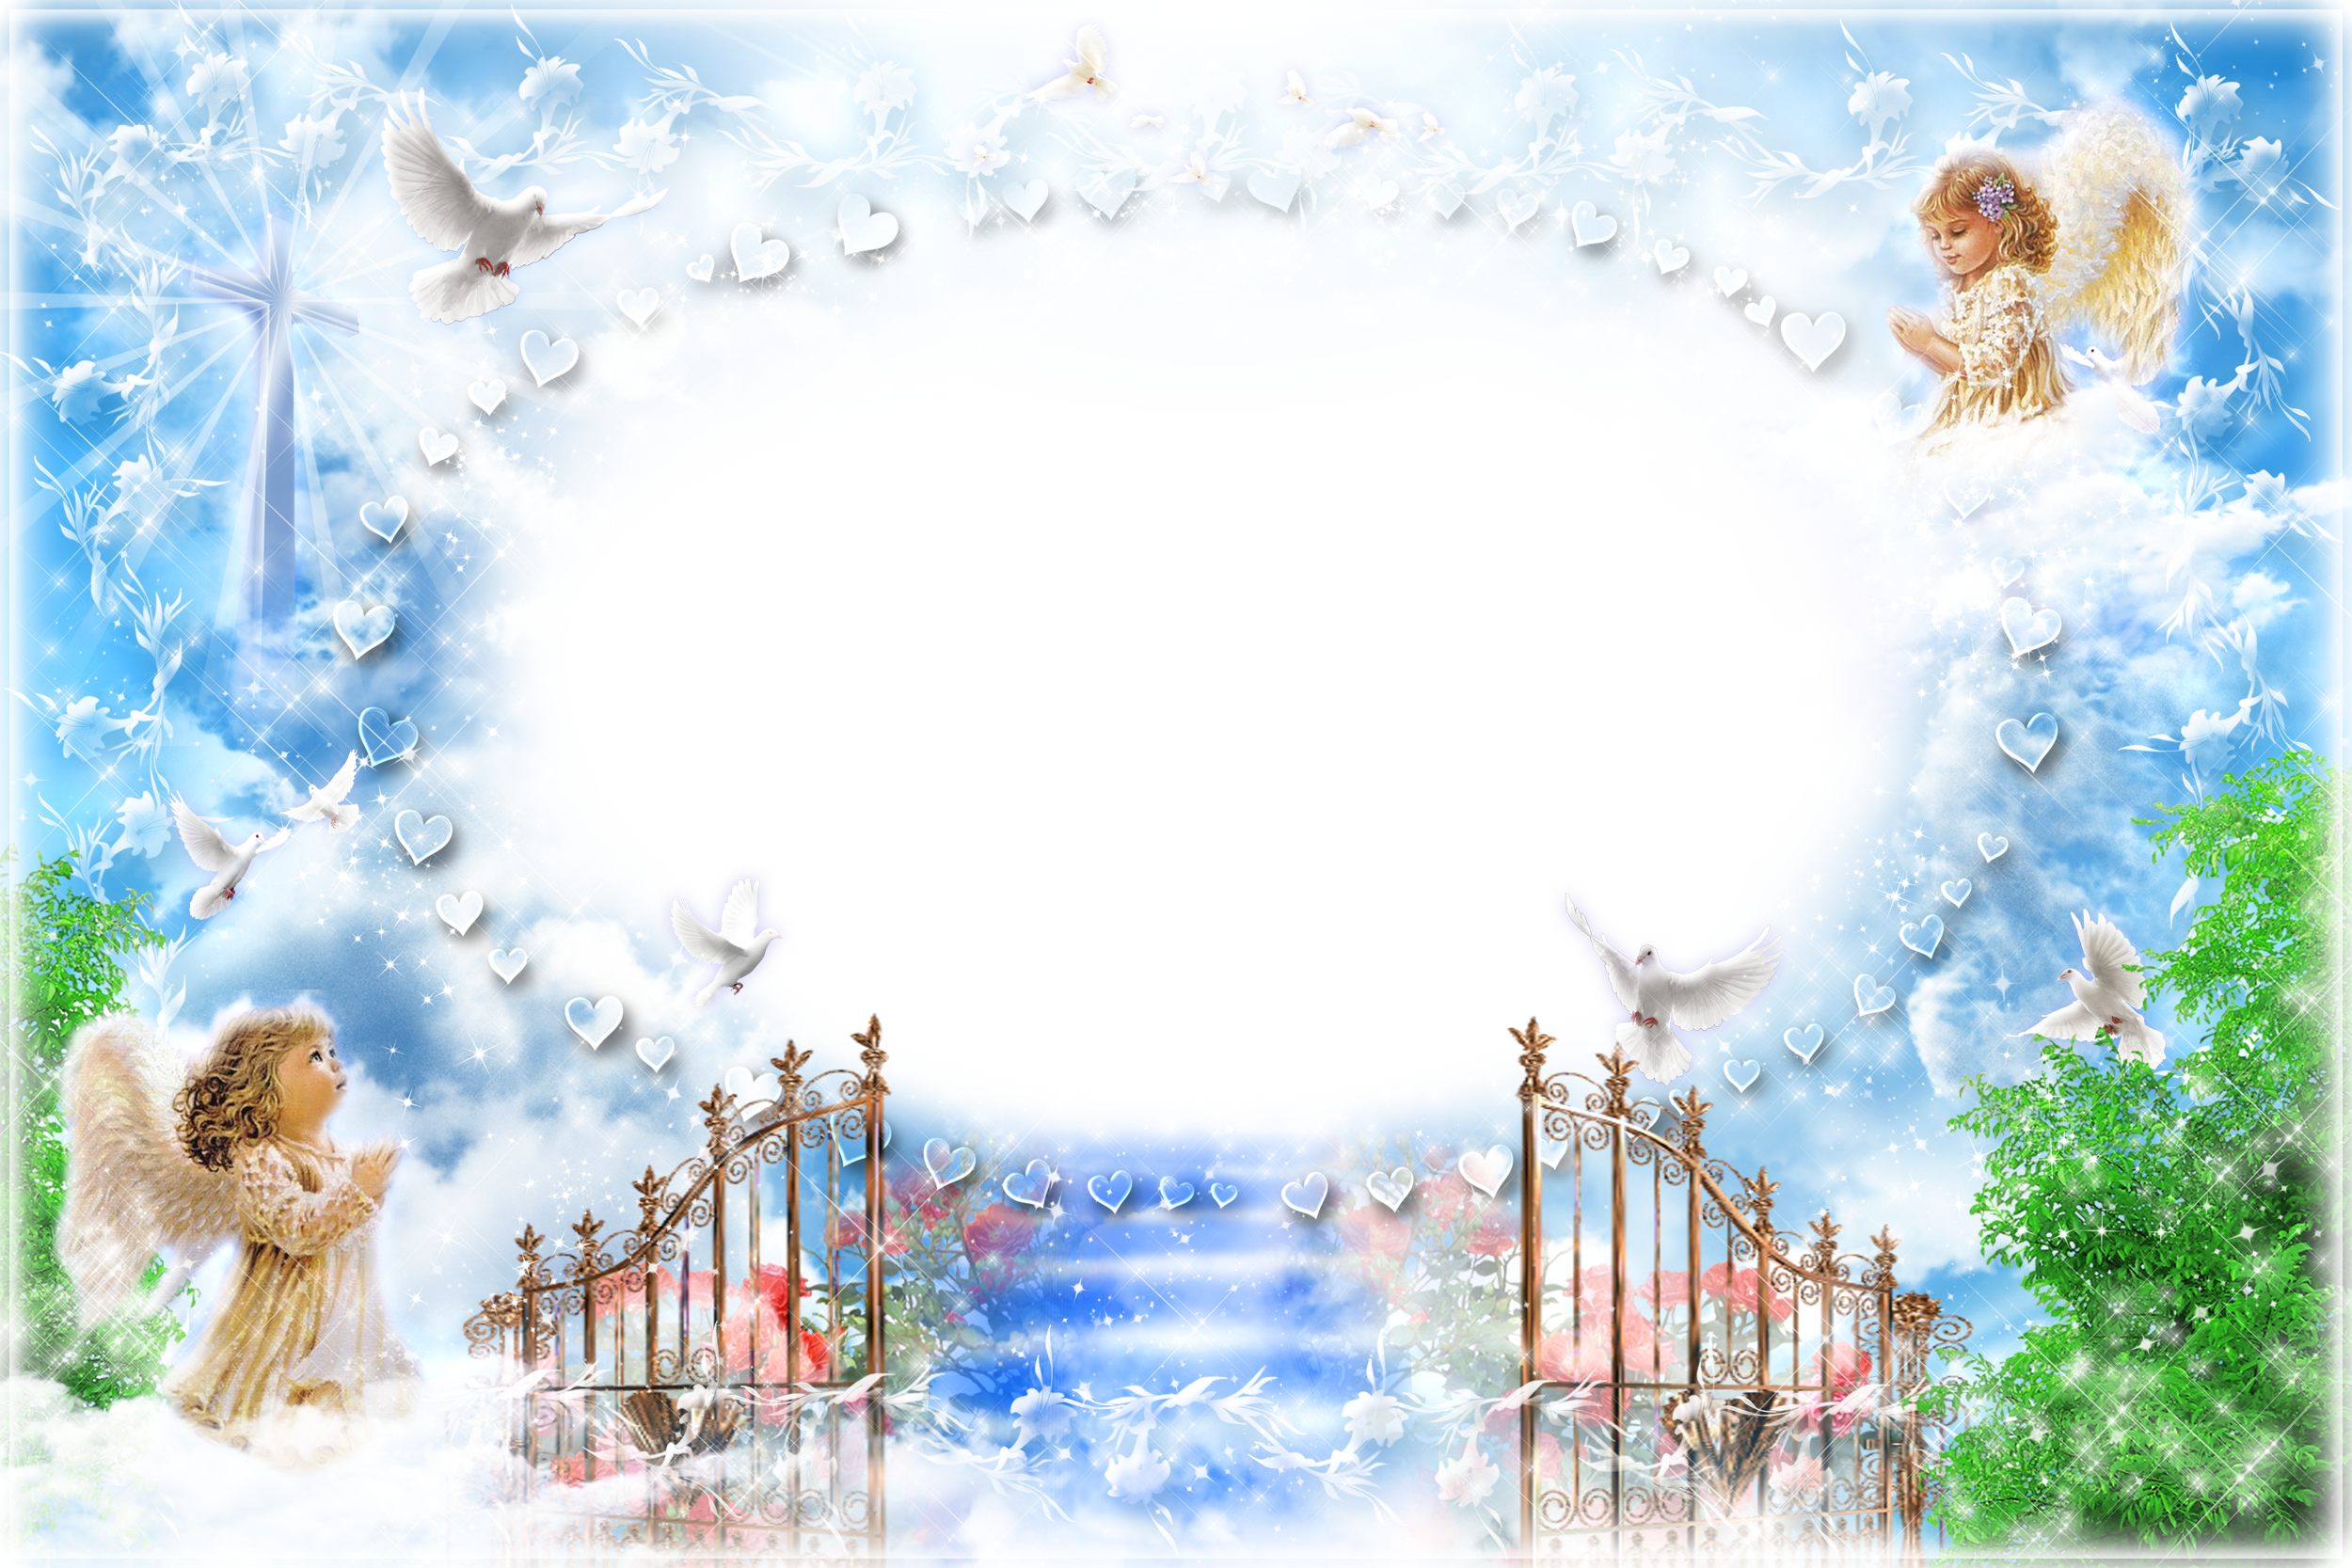 heaven's gate png